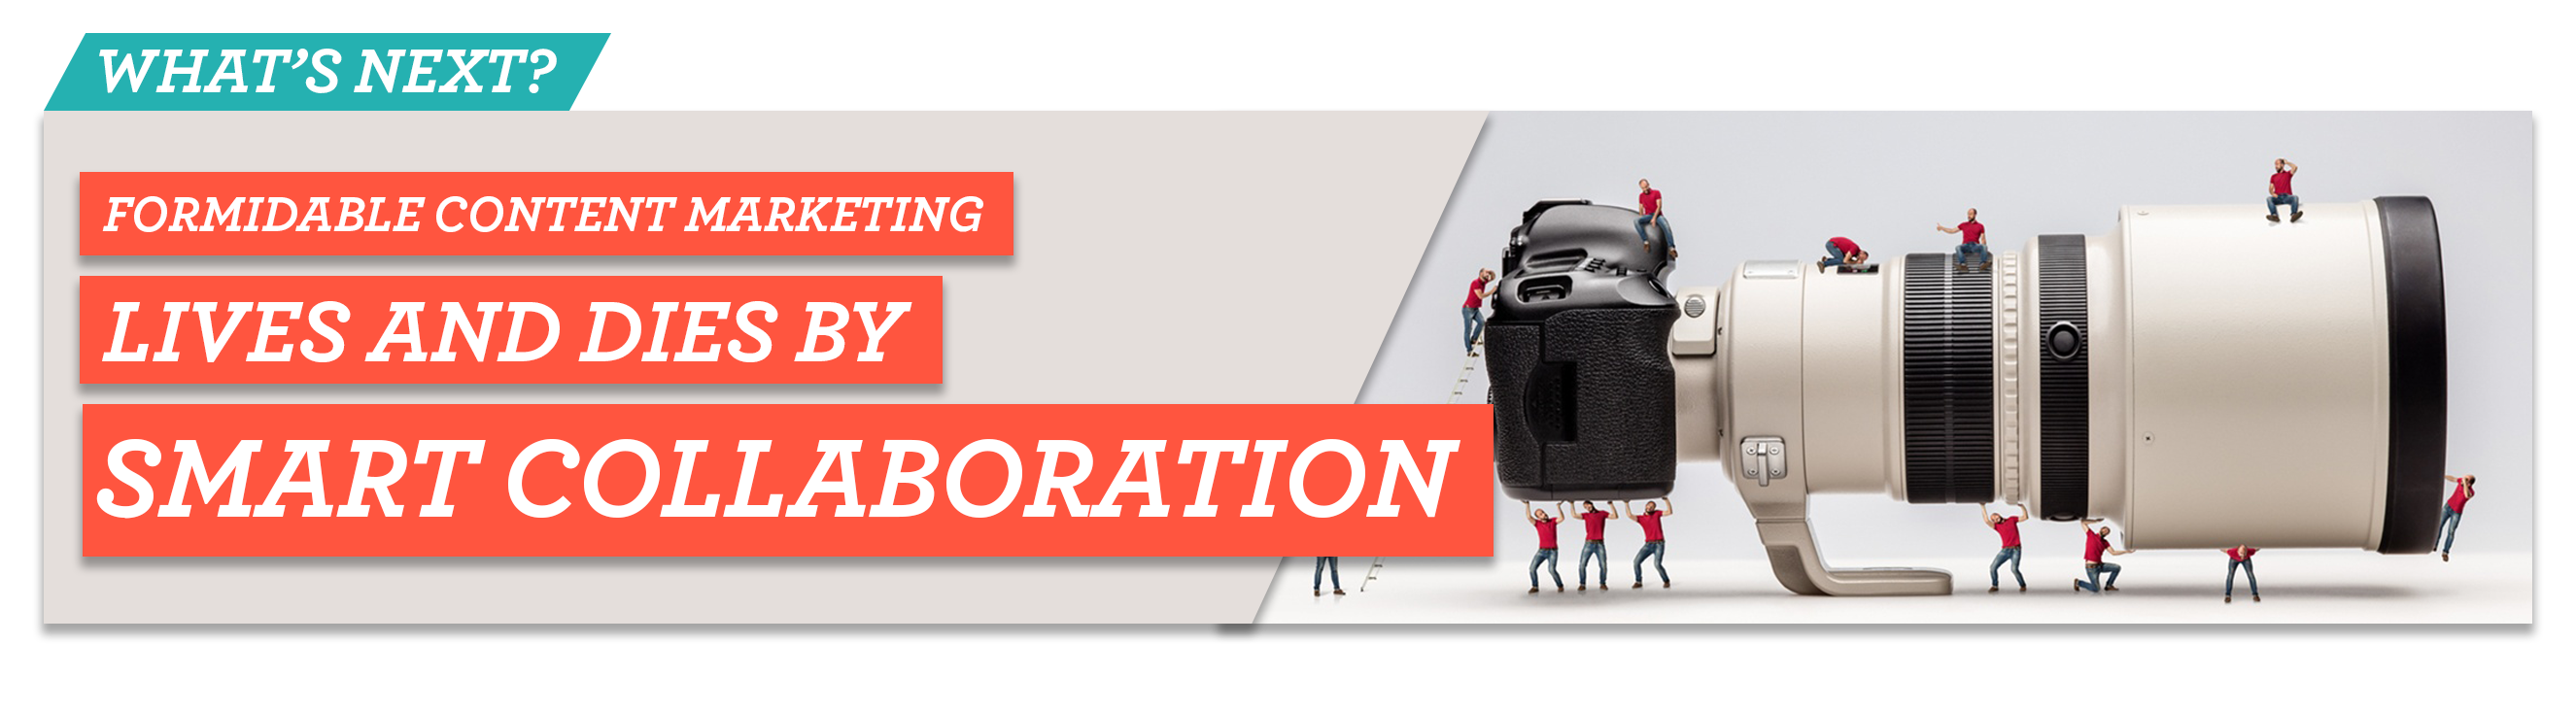 importance of collaboration in content marketing